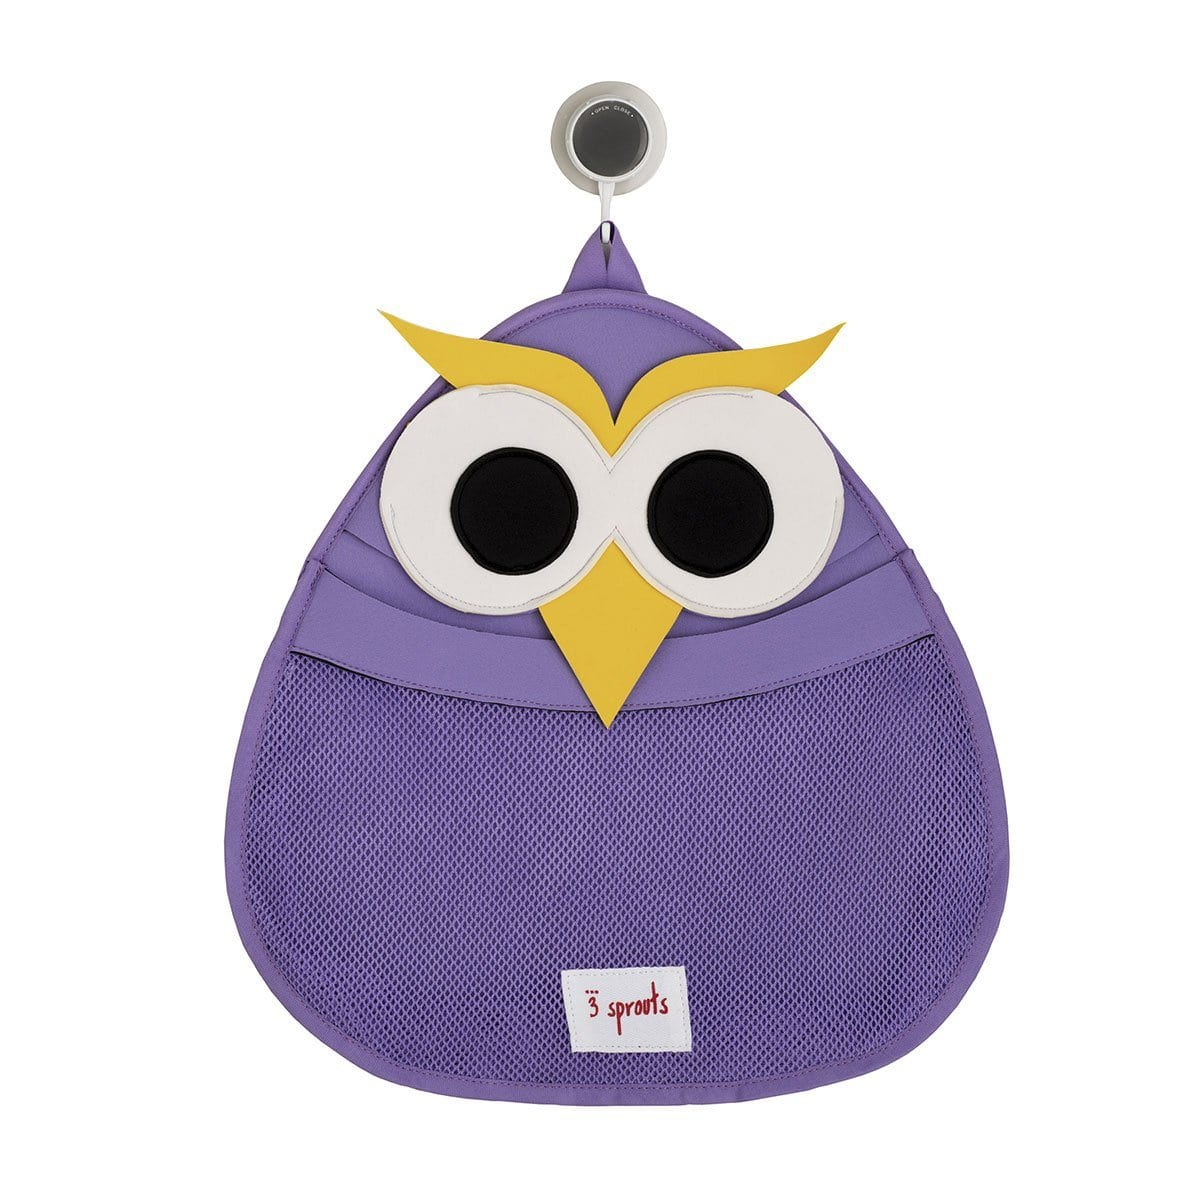 3 Sprouts Owl Bath Storage - huggle